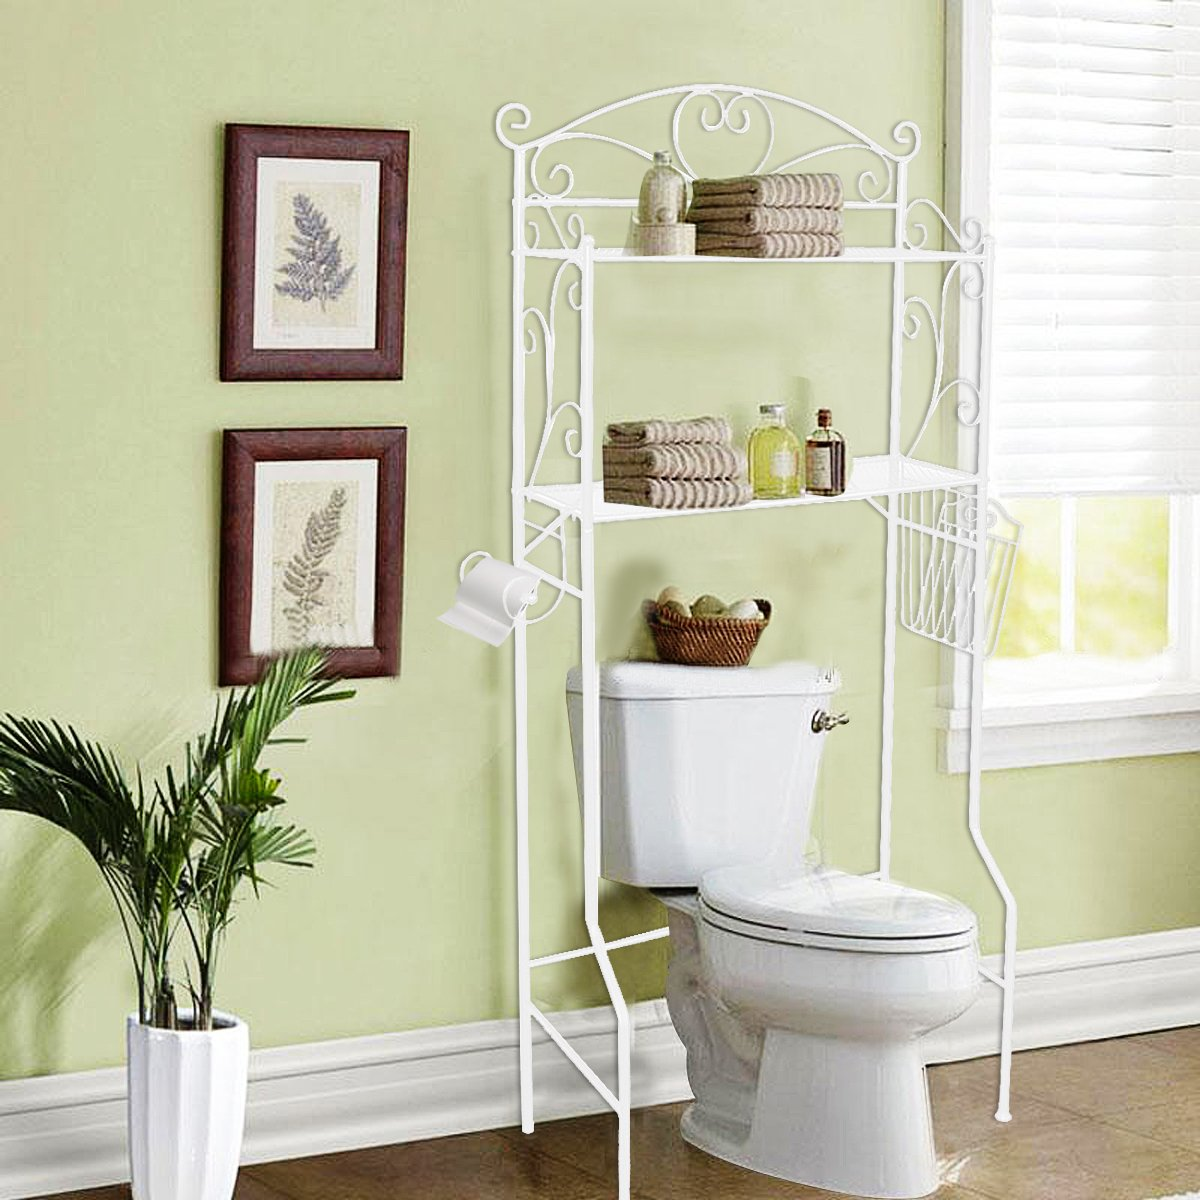 Amazon.com: VDOMUS Bathroom Space Saver Storage Over the Toilet Wire ...